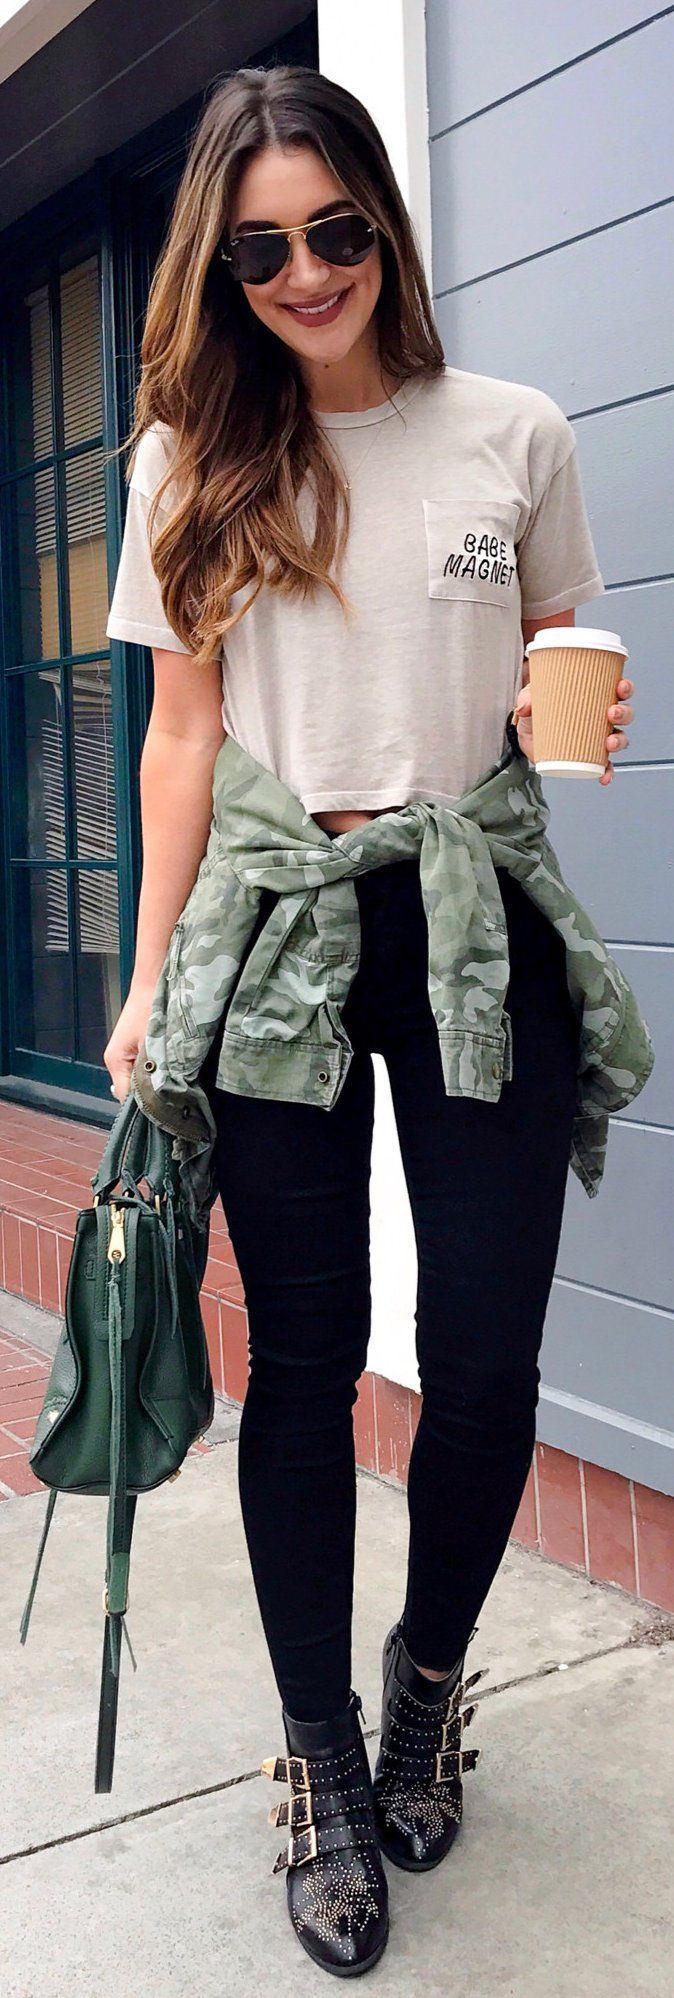 Cream Tee / Army Jacket / Black Skinny Jeans / Black Leather Booties / Green Leather Tote Bag